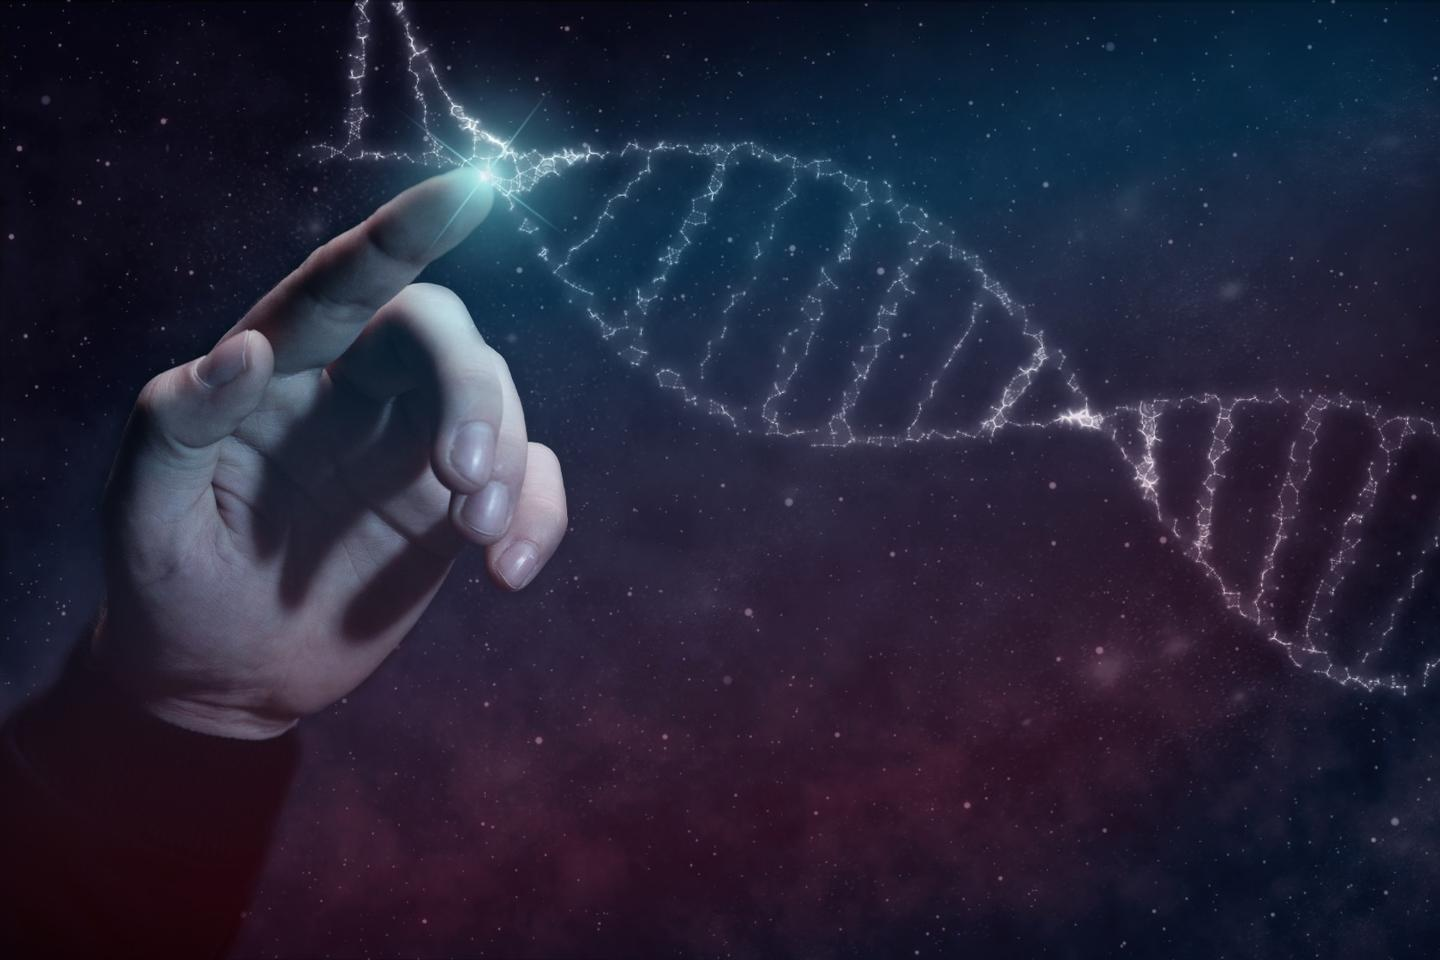 The first reported human trial outside of China using CRISPR gene editing is now officially underway testing the safety and efficacy of this groundbreaking technology